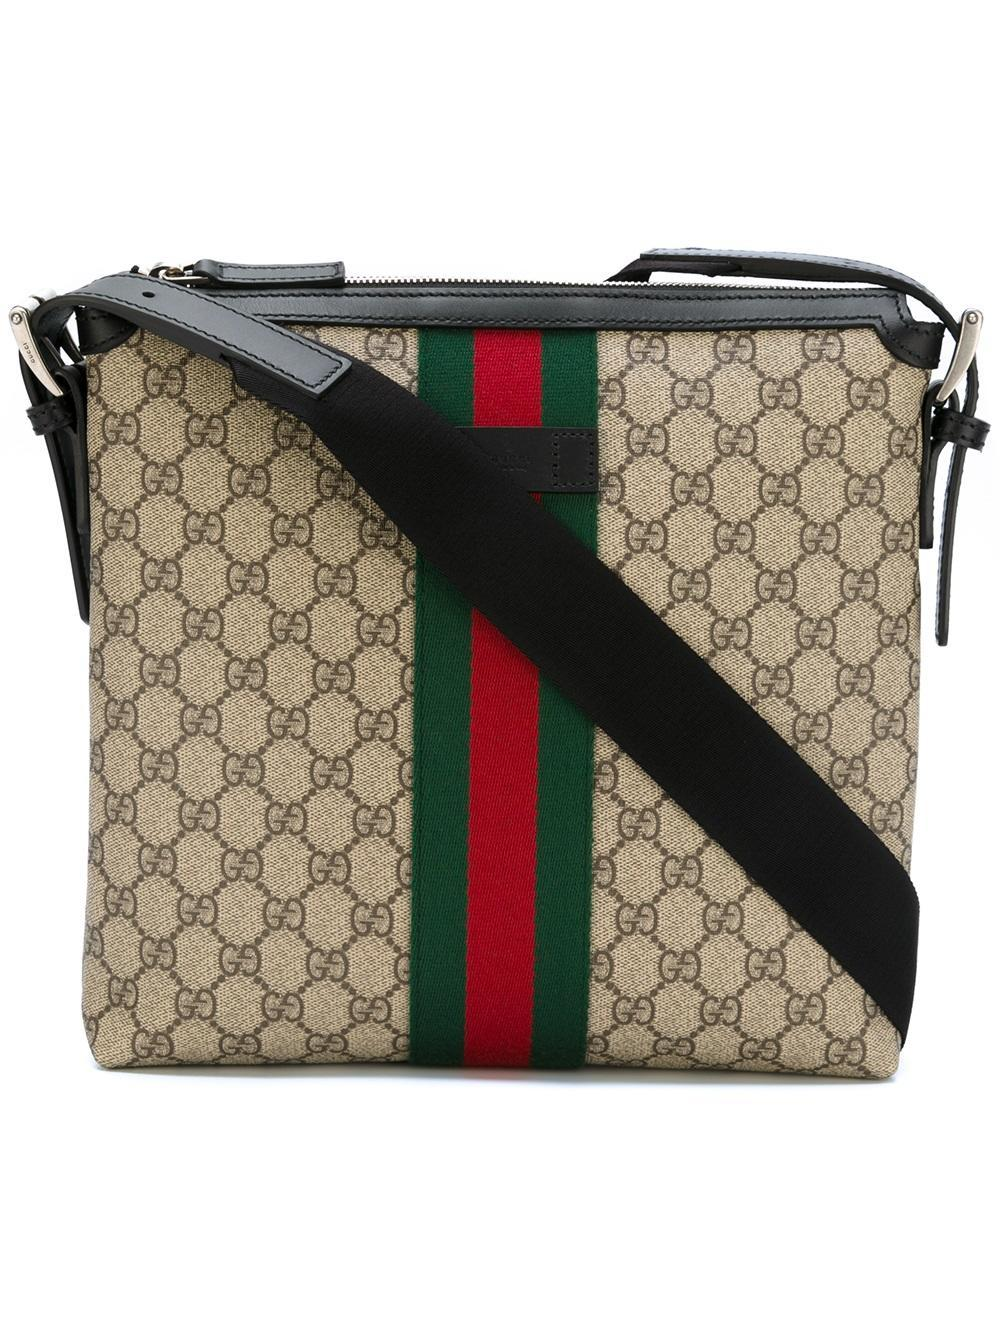 7438cb28b9014f Gucci Gg Supreme Messenger Bag With Web Detail in Black for Men - Lyst